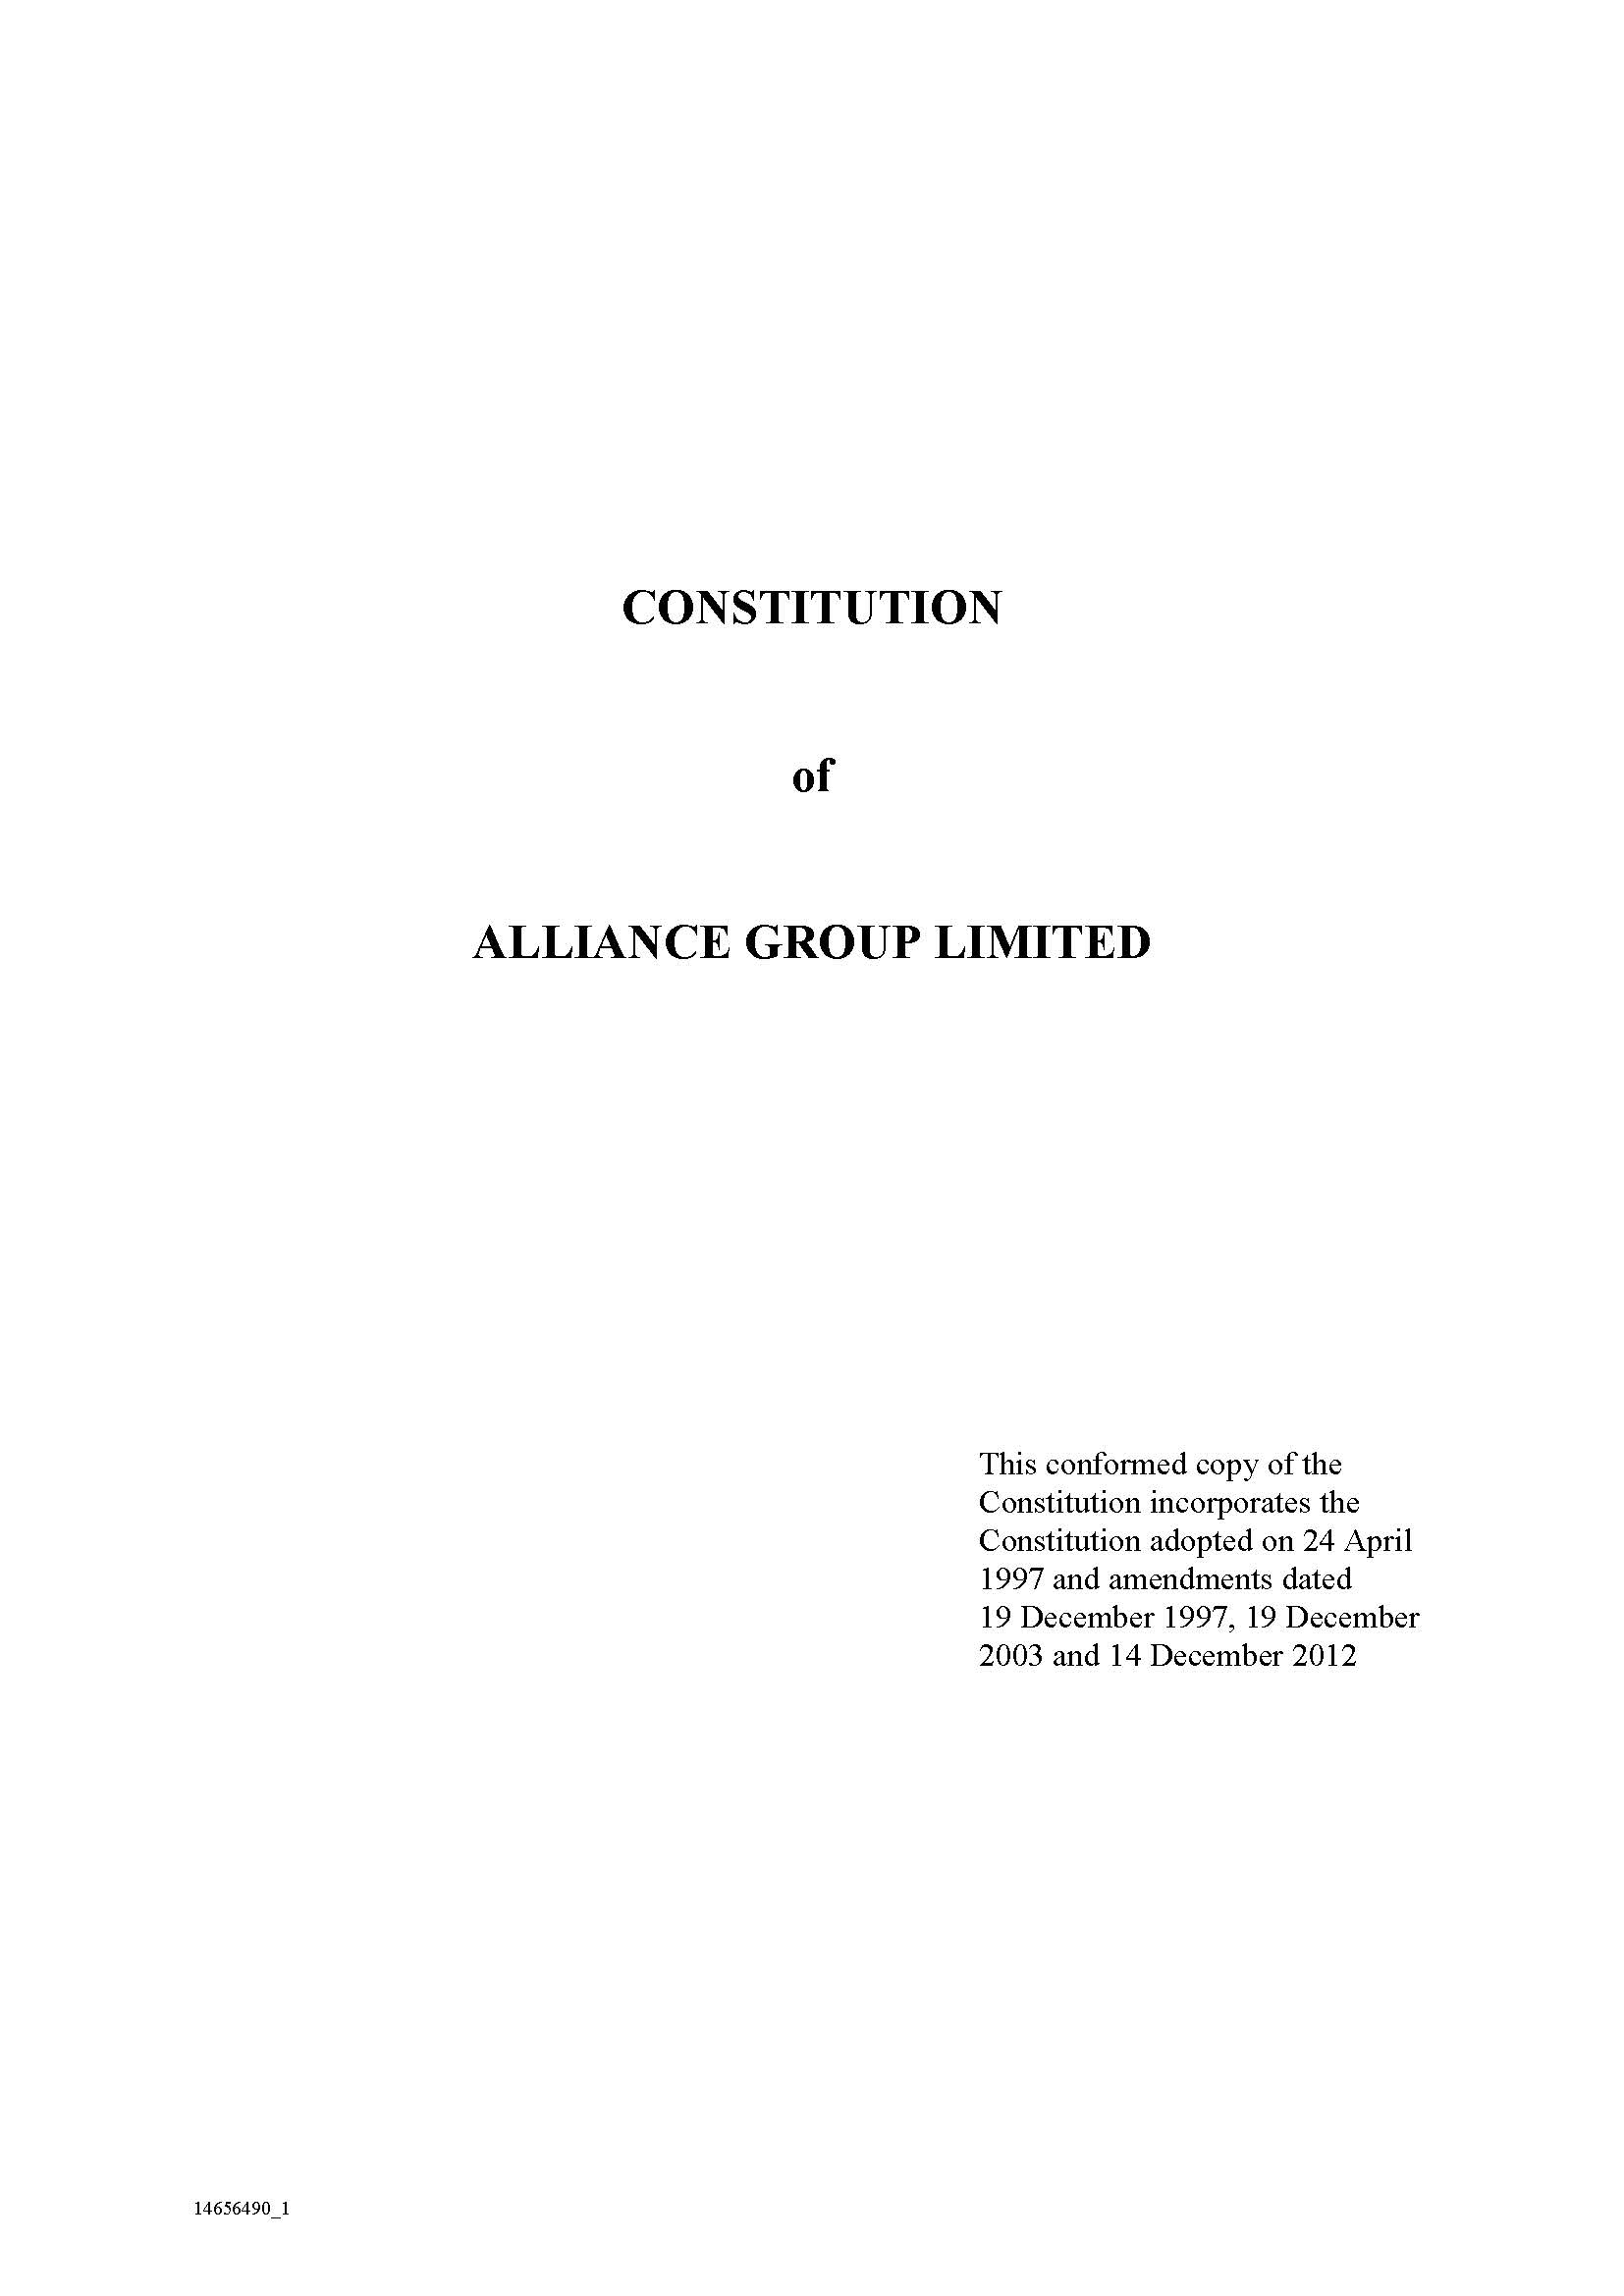 Alliance Group Constitution